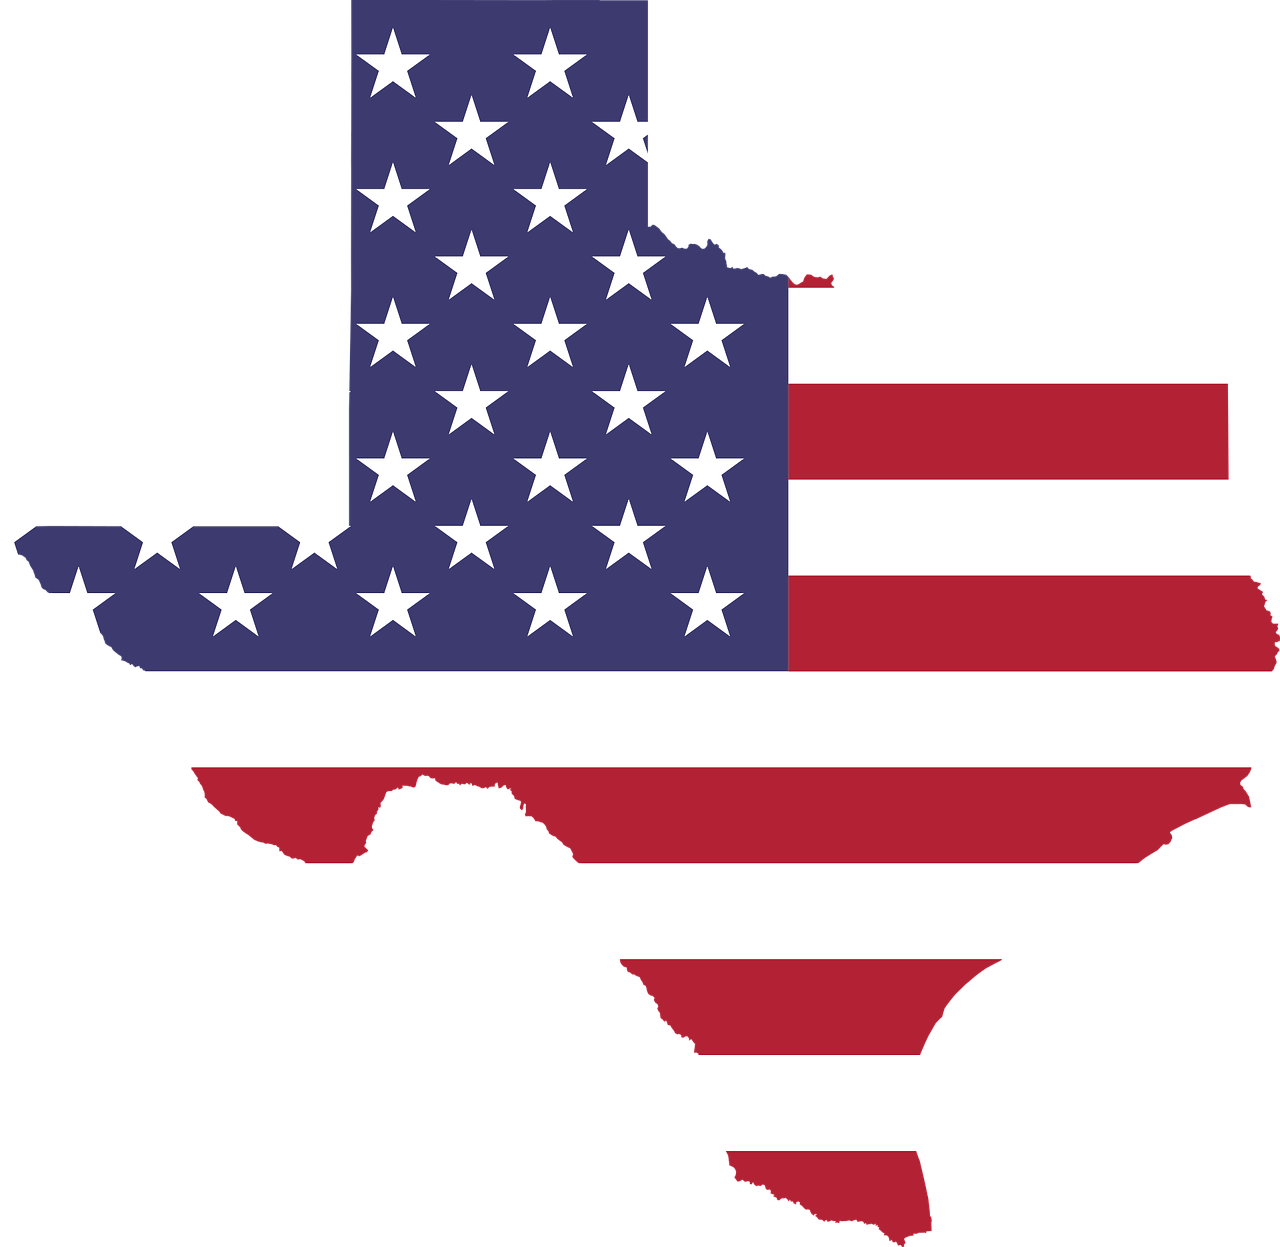 Where to celebrate Fourth of July in Texas